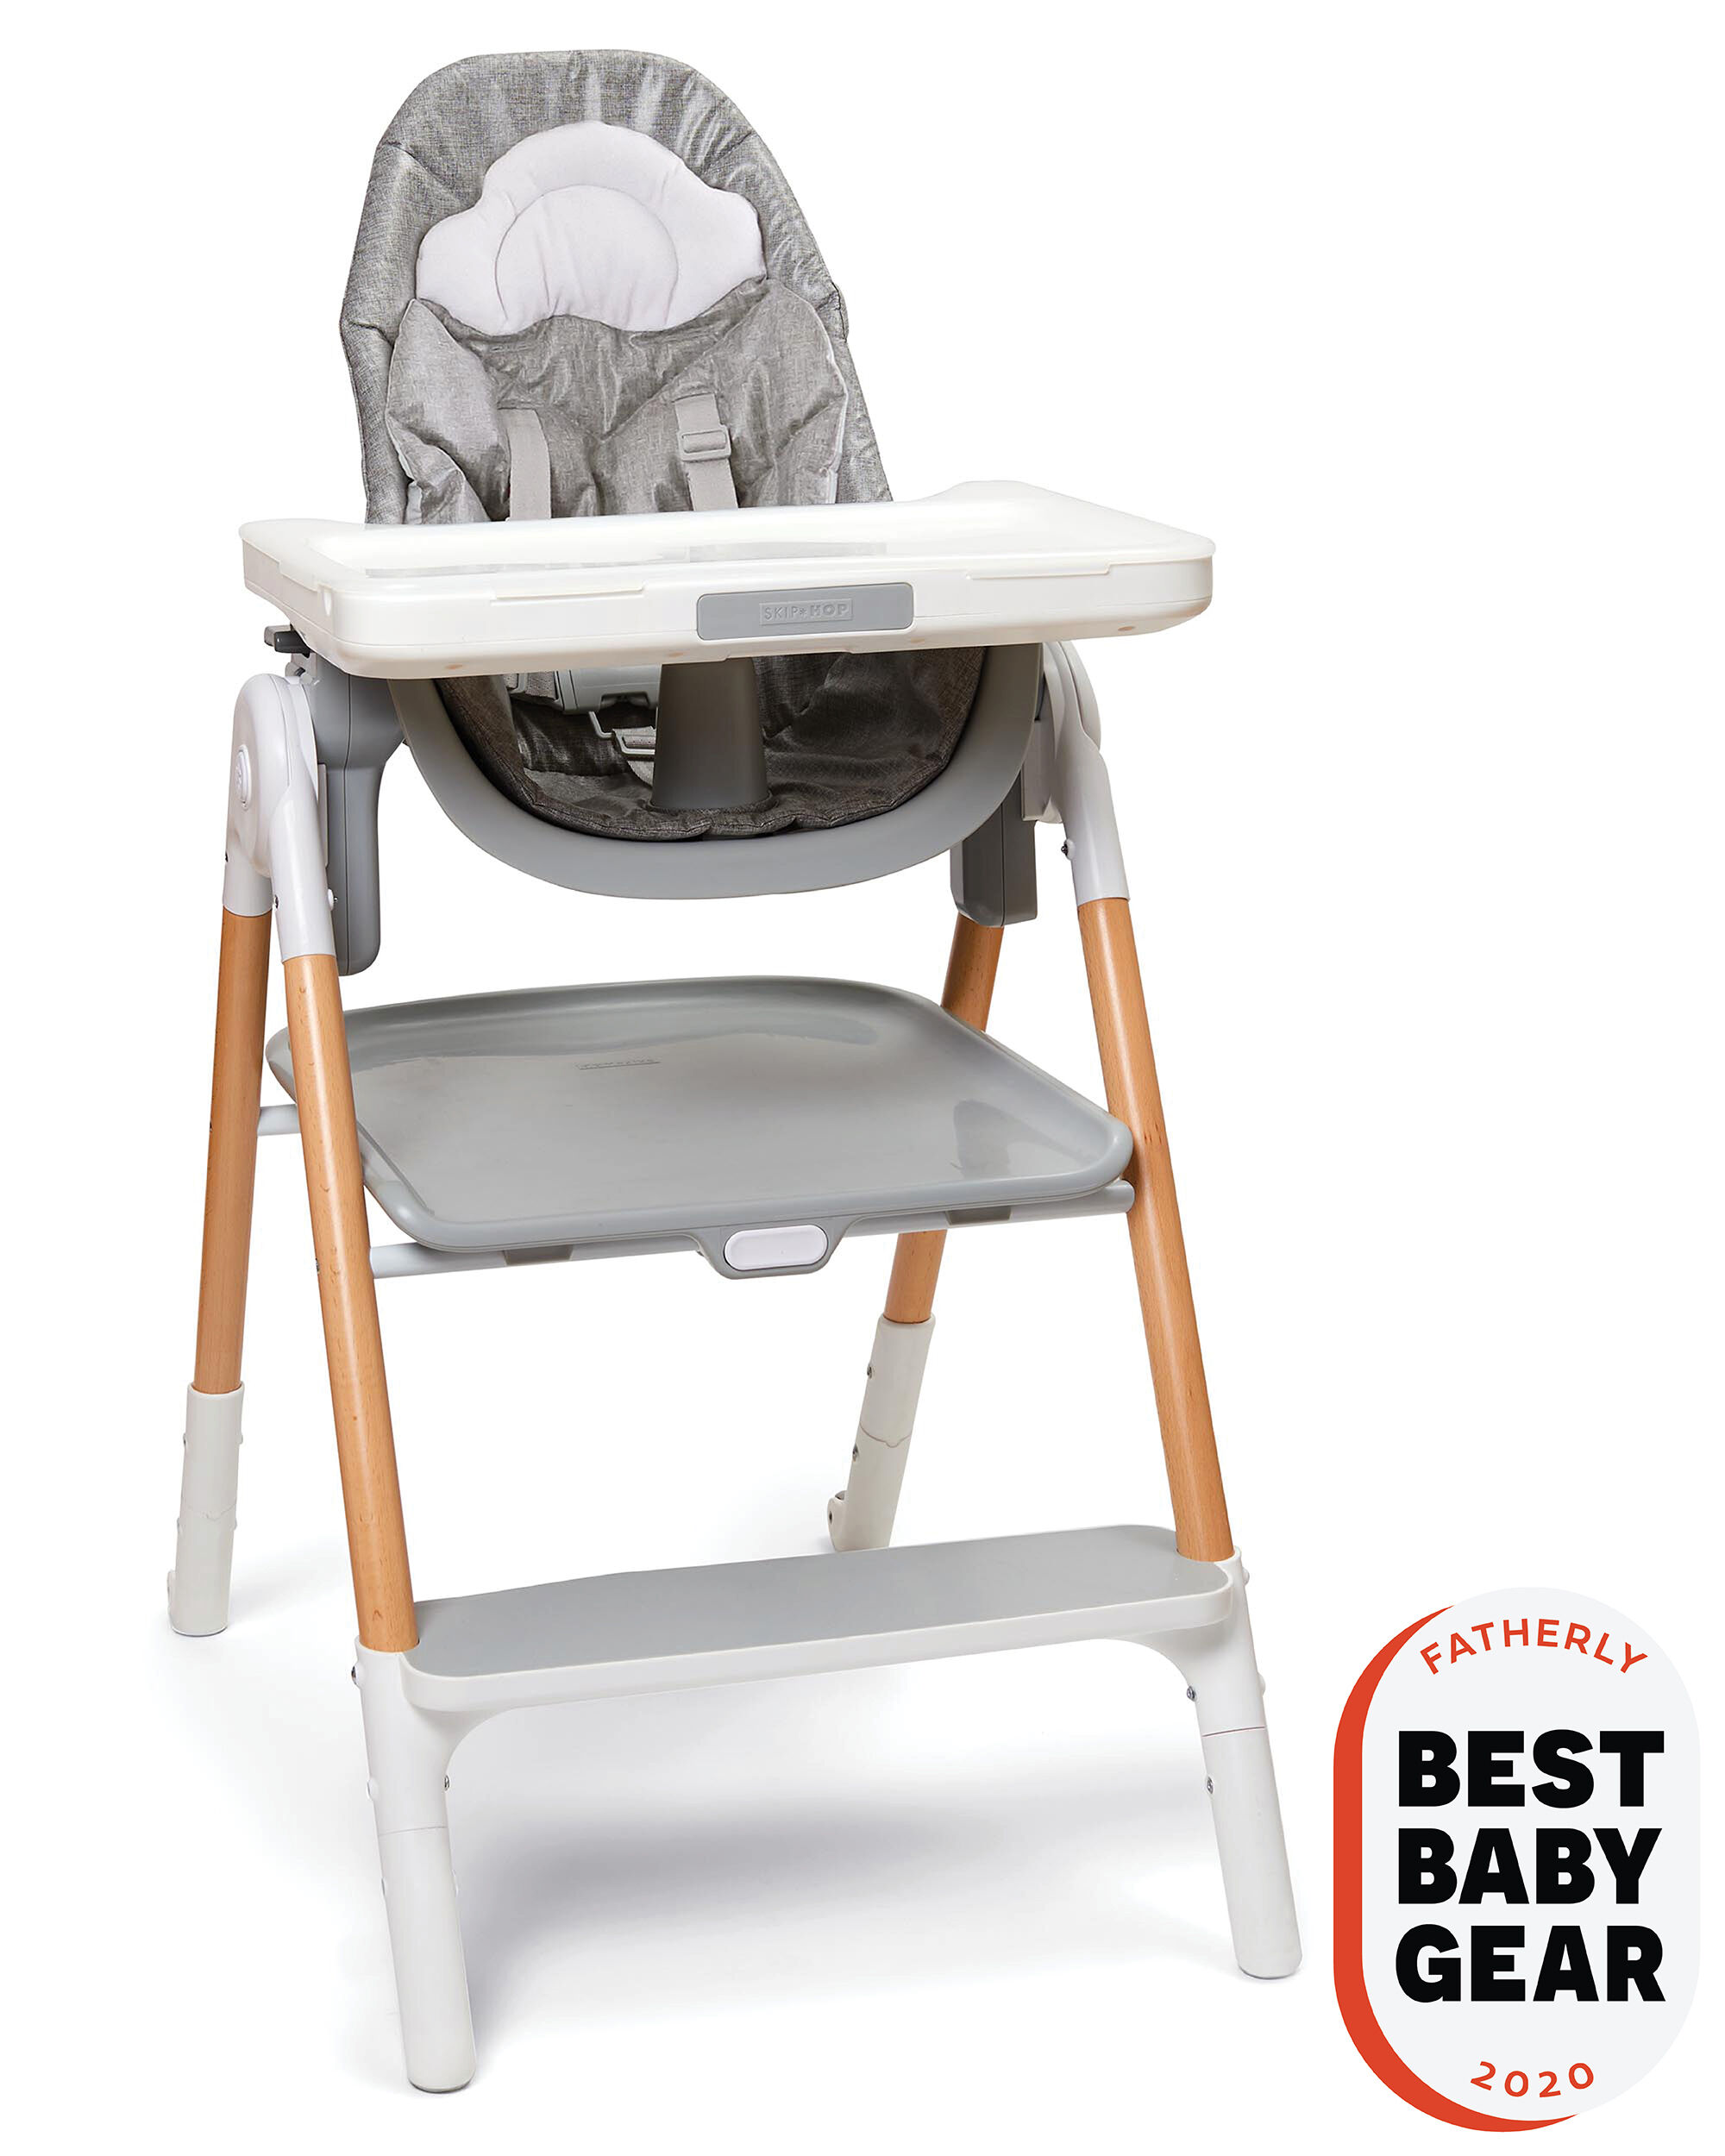 Carters Sit-To-Step High Chair